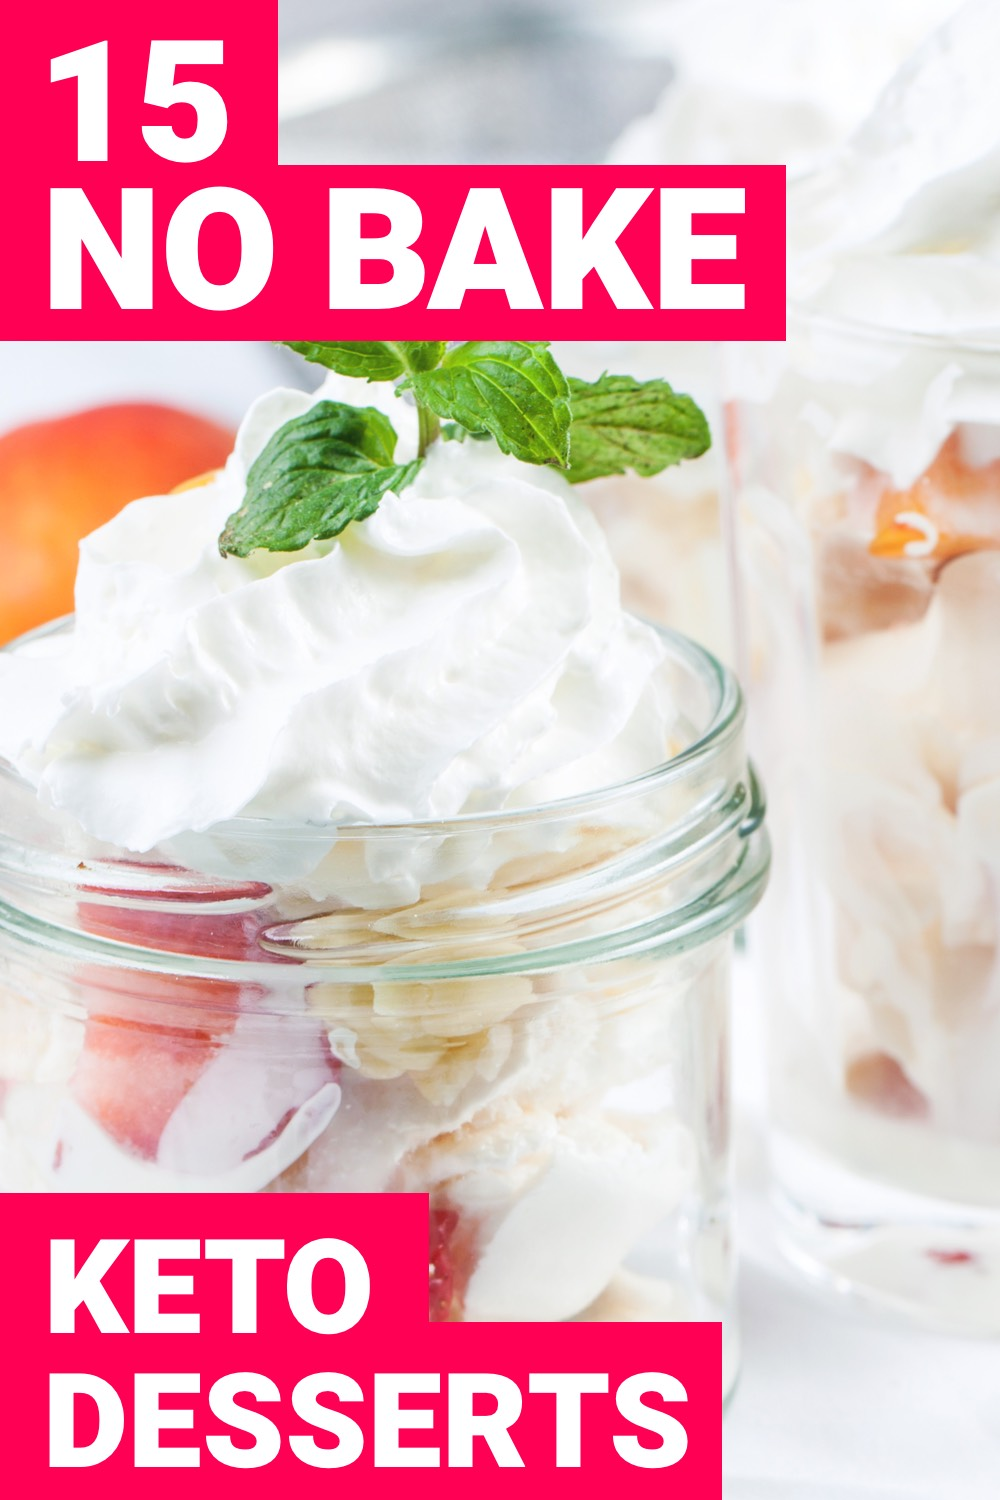 Doing keto? Want some sweets? Then these keto desserts are perfect for you.